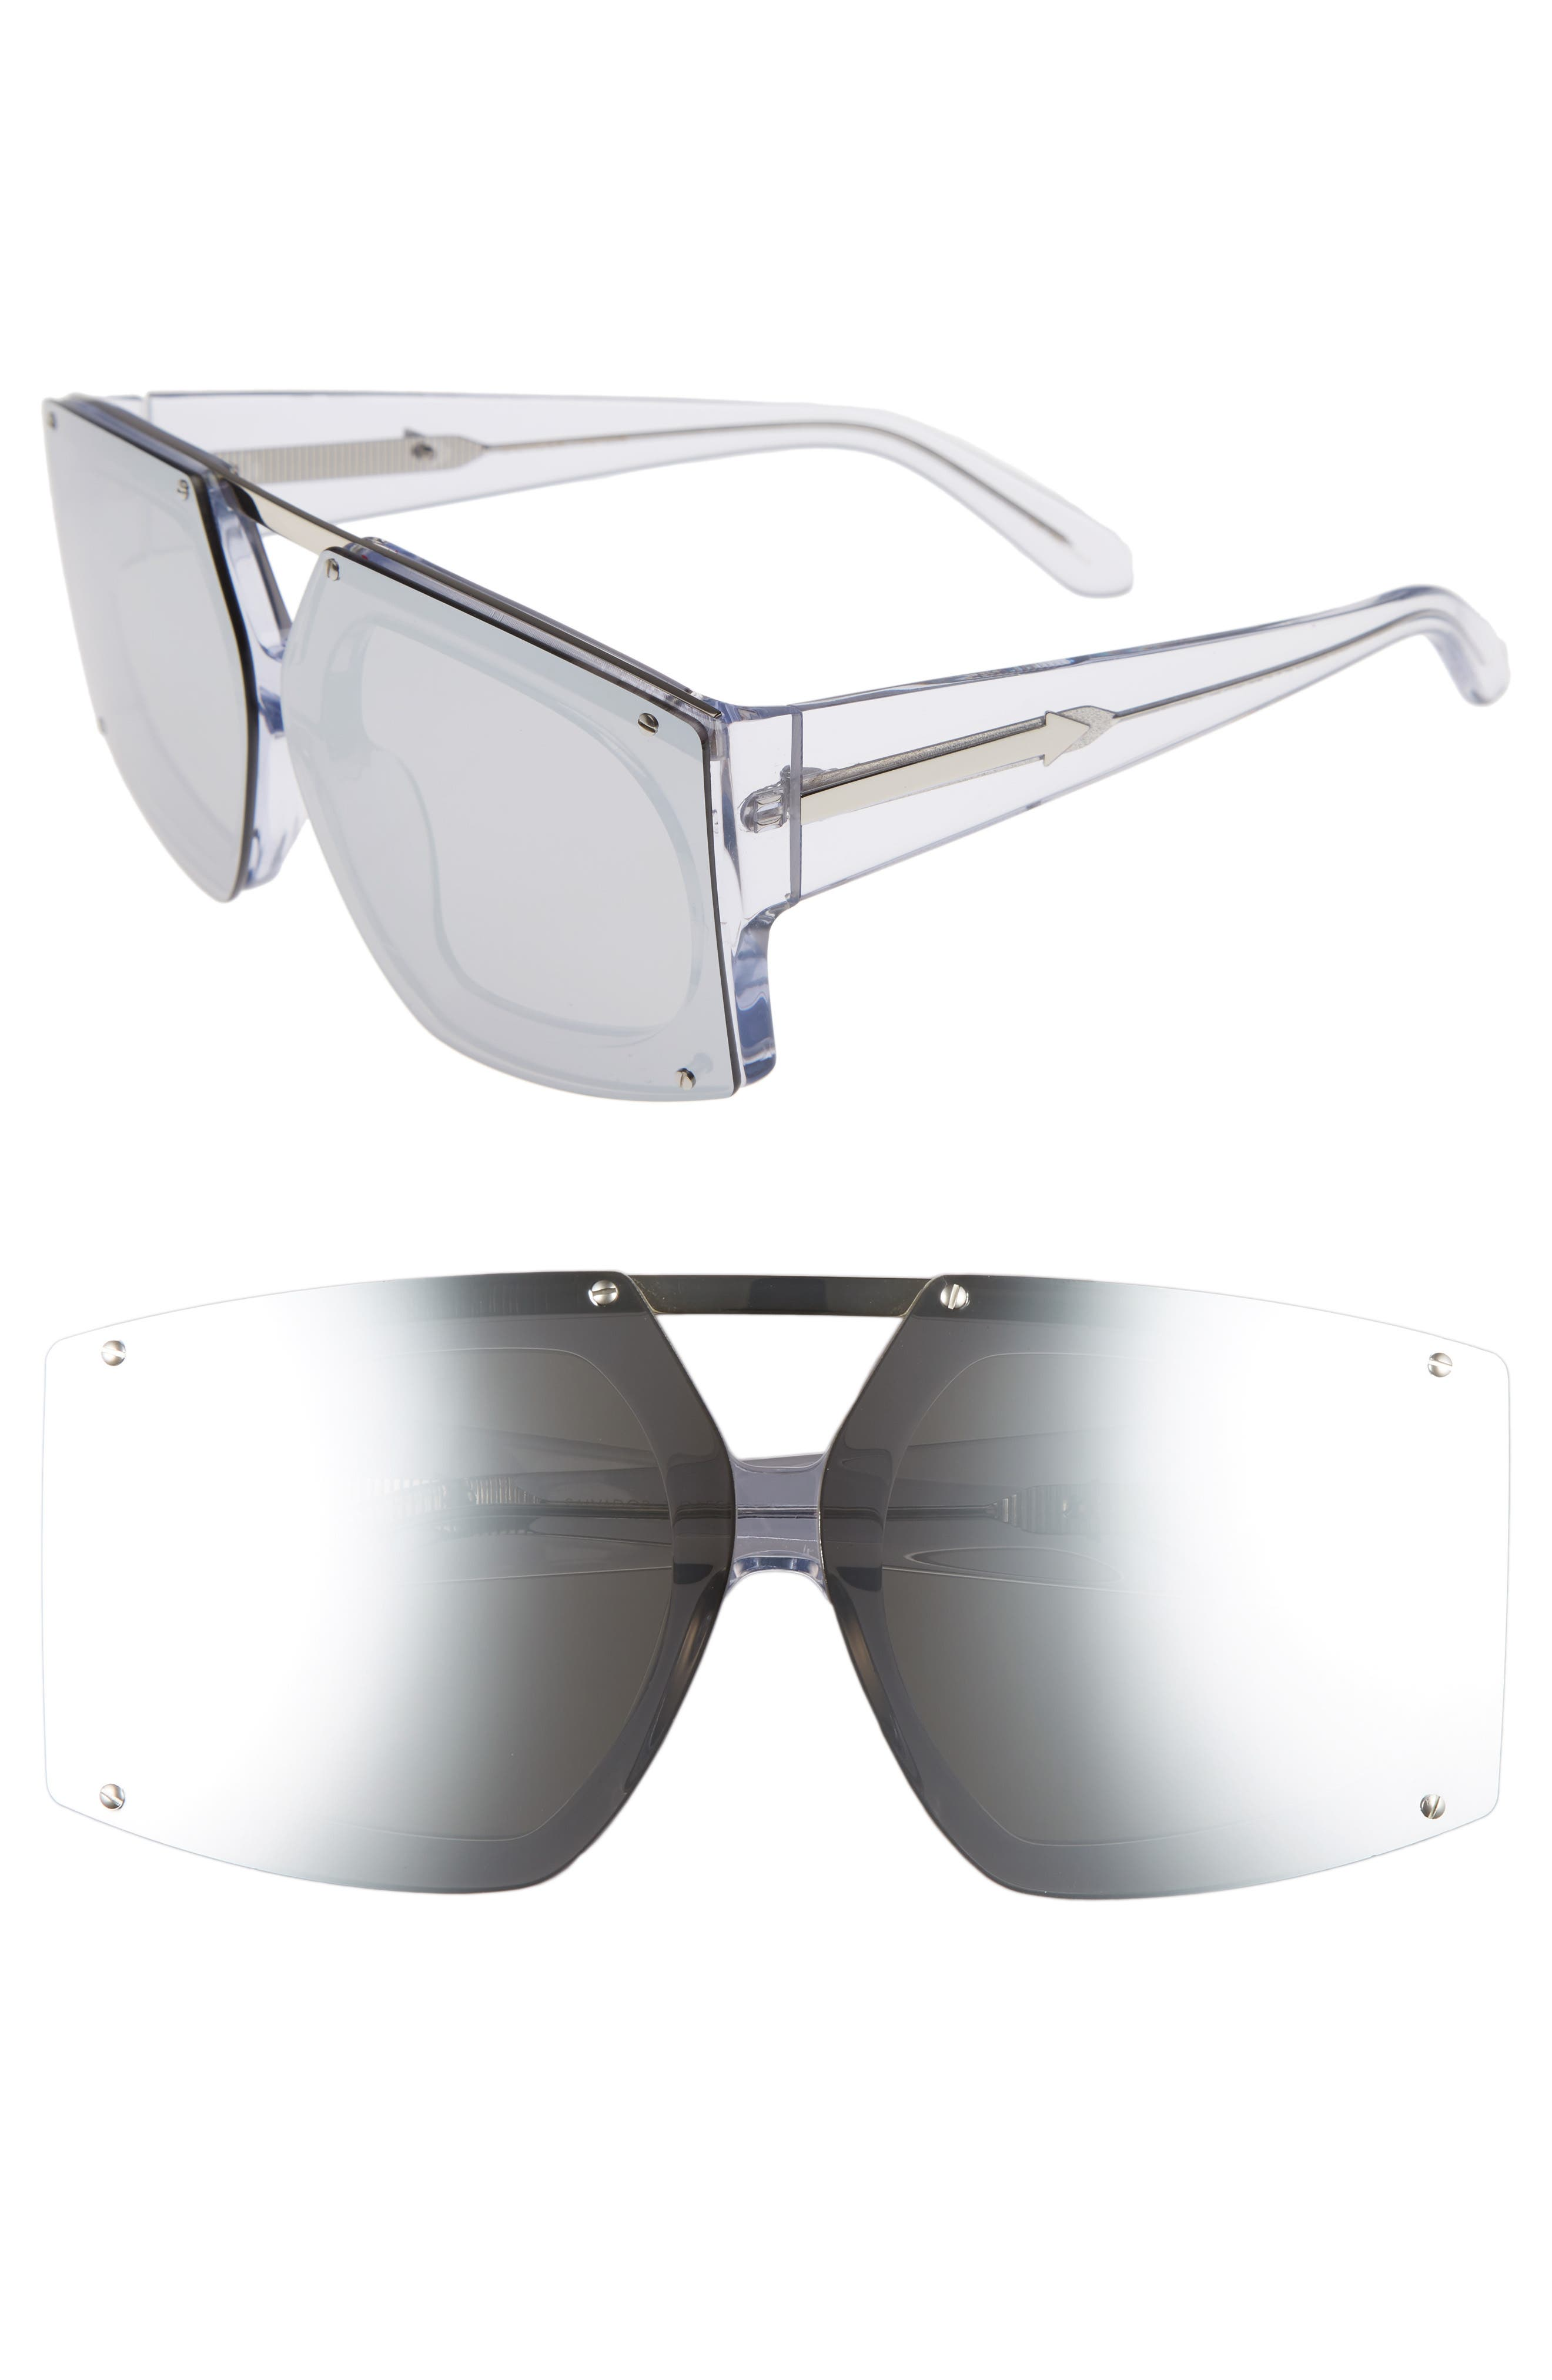 70mm Mirrored Oversized Sunglasses,                         Main,                         color,